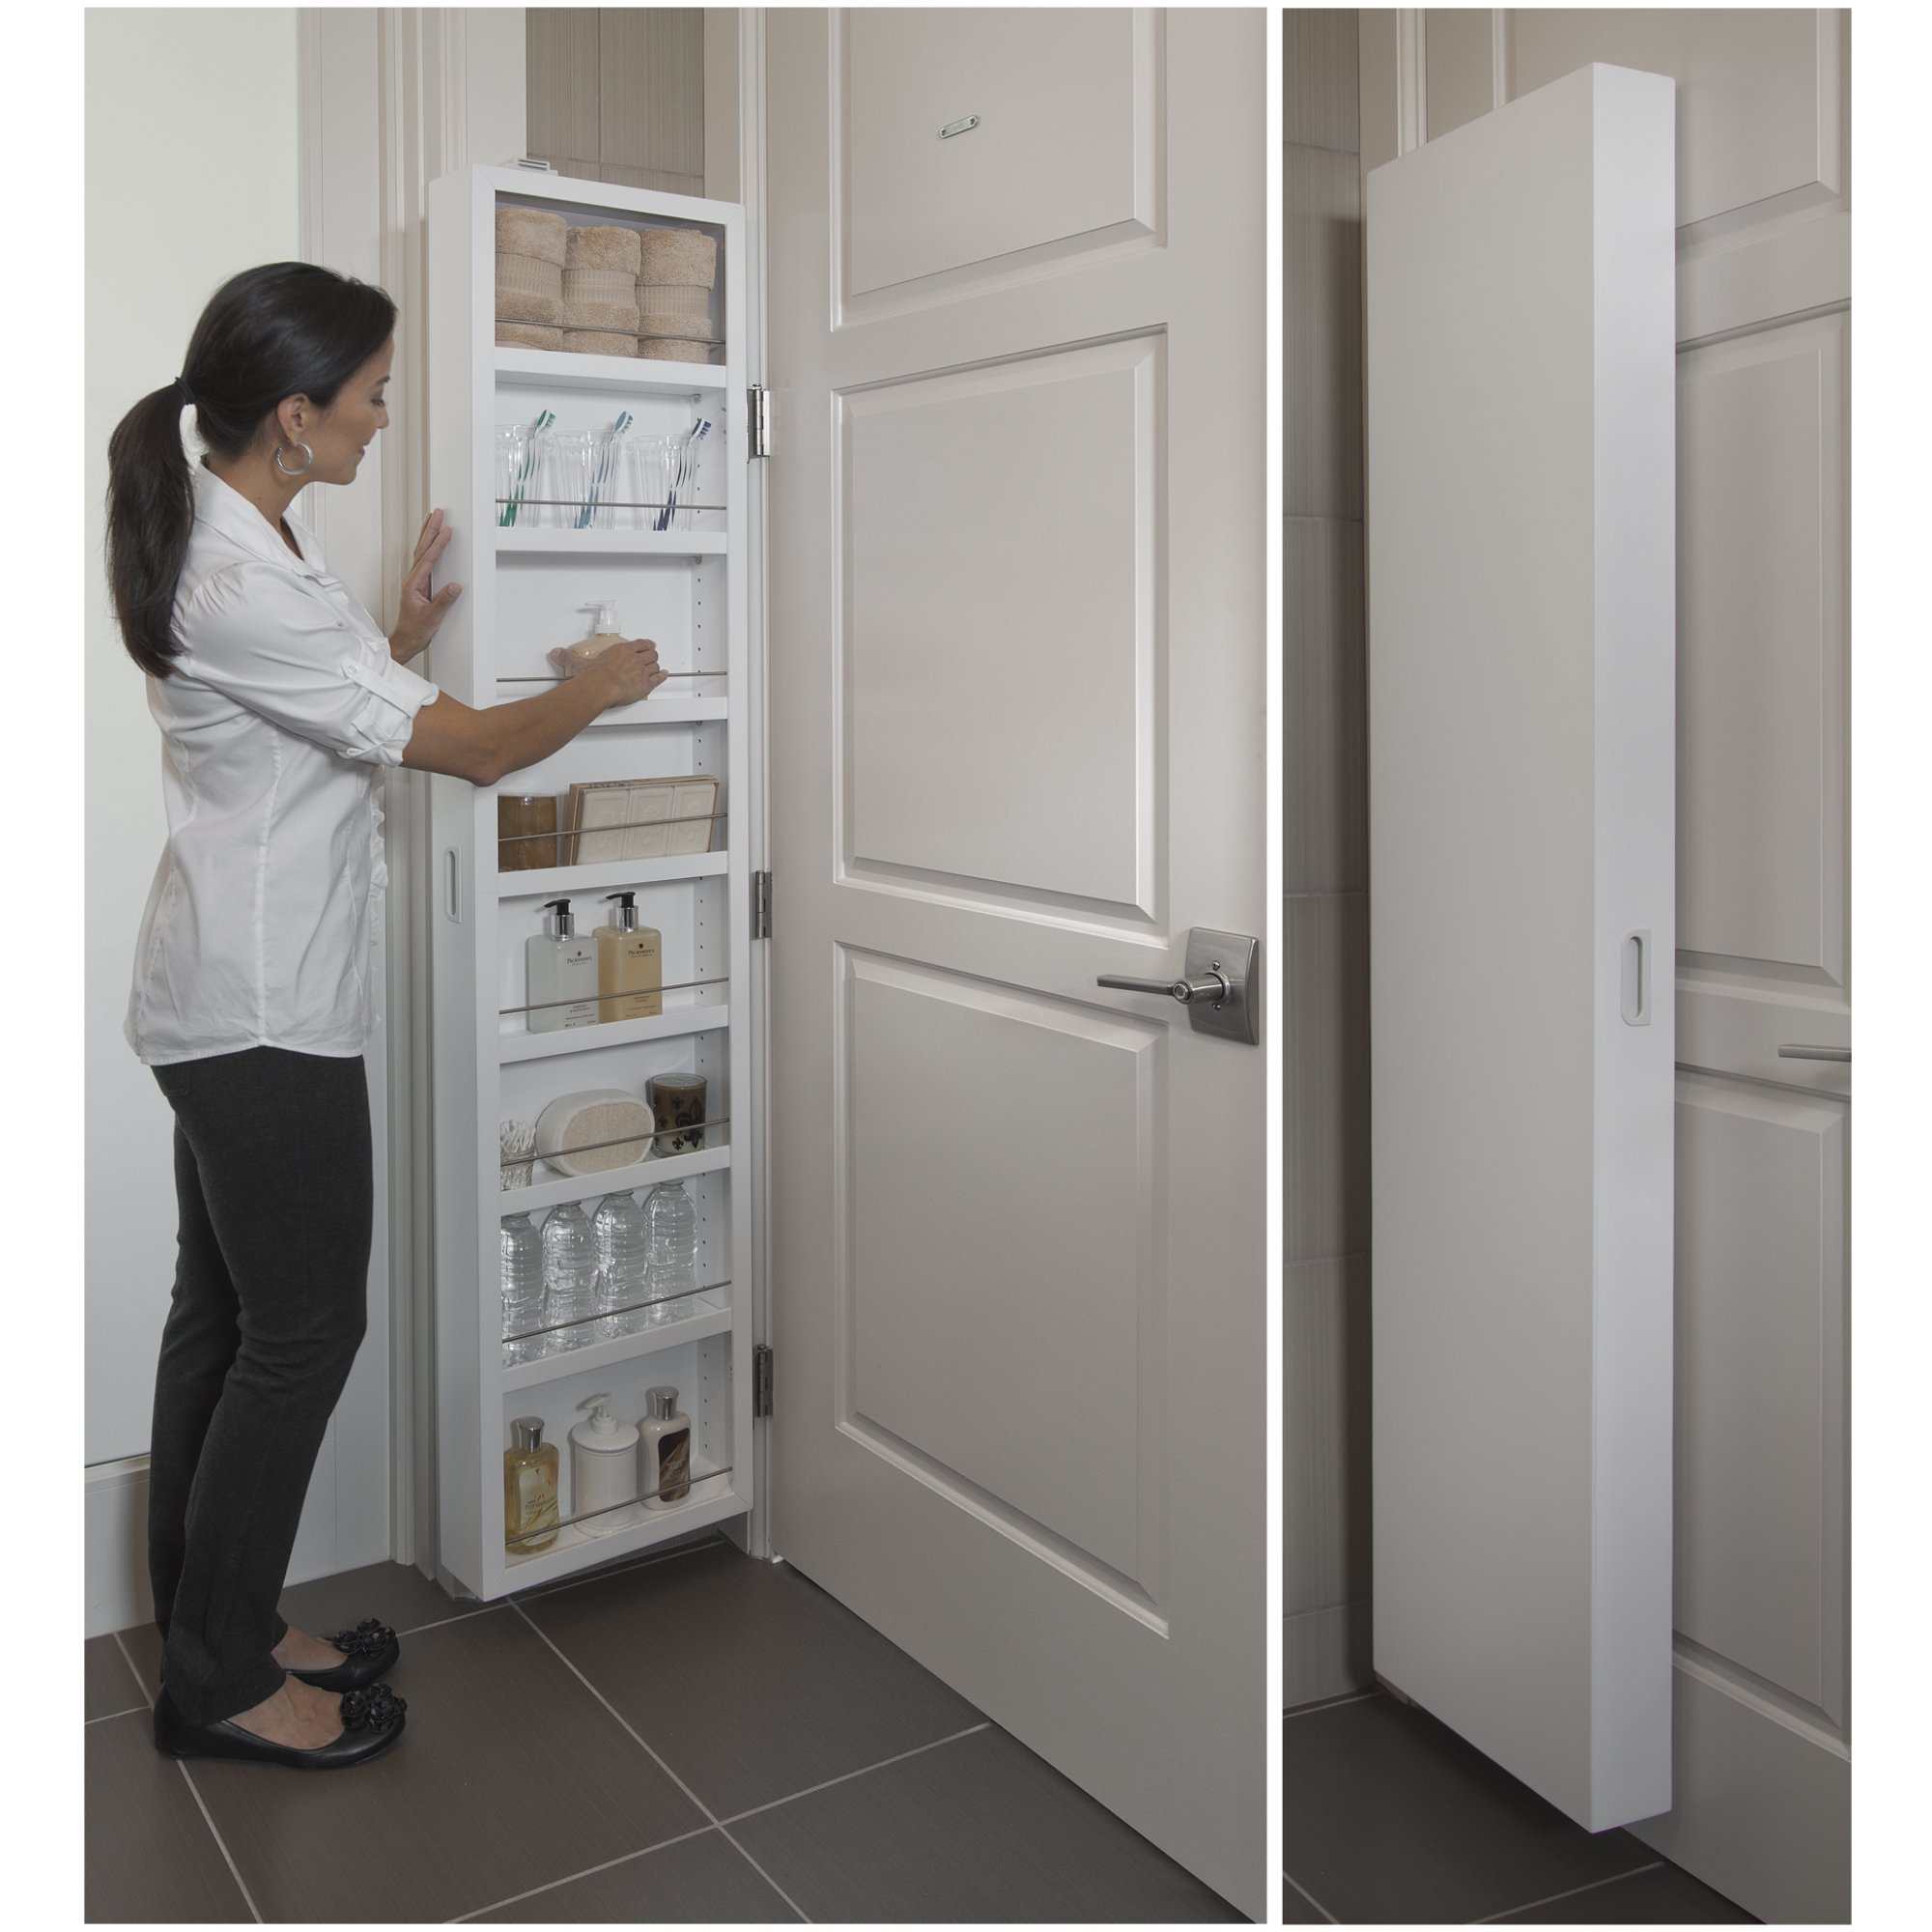 Behind The Door Concealed Storage Cabinet, 8 Shelves, Adjustable and Customizable Design, Bathroom Furniture, Innovative Space-Saving Solution, Medicine Cabinet, Easy to Assemble by GAShop